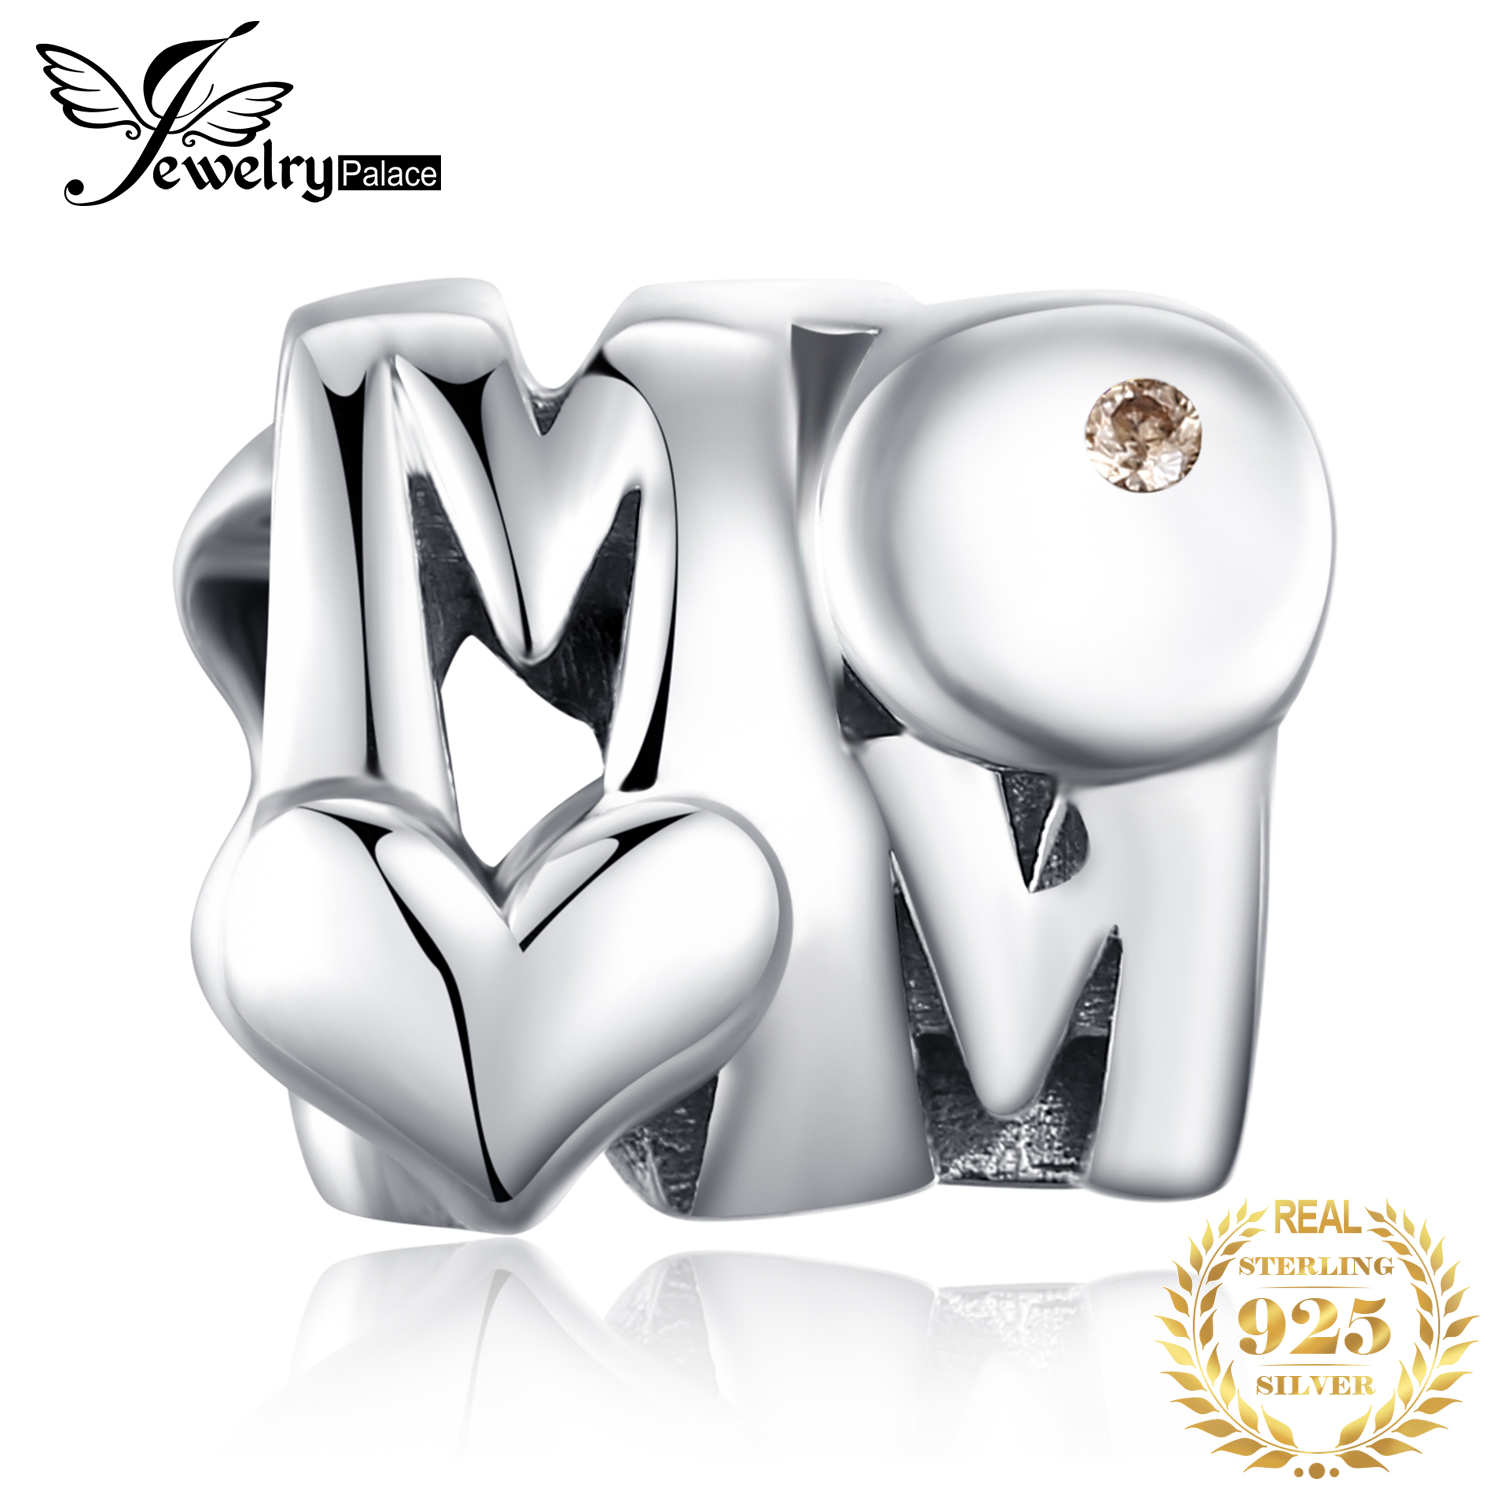 JewelryPalace 925 Sterling Silver Heart Mother Beads Charms Silver 925 Original For Bracelet Silver 925 original Jewelry Making in Beads from Jewelry Accessories